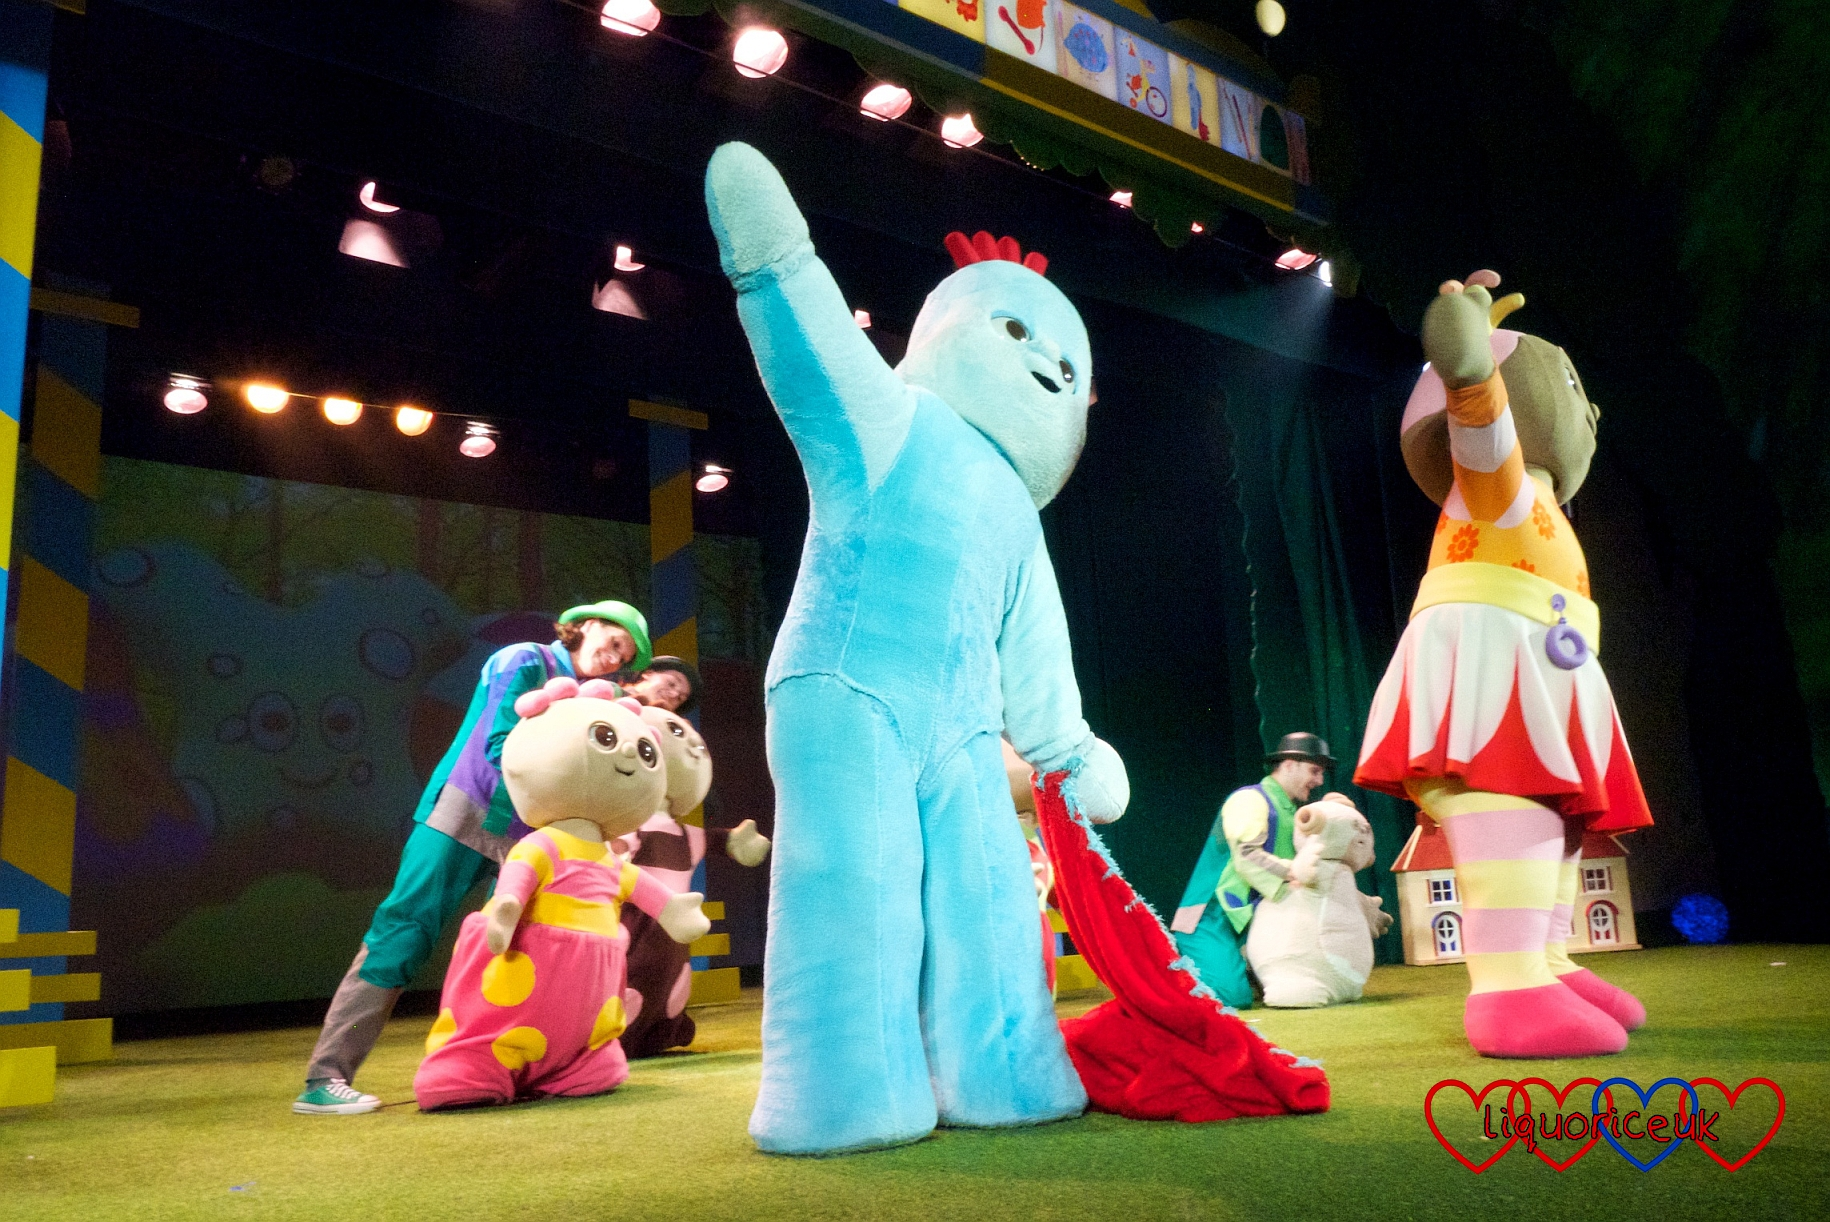 The In the Night Garden characters dancing together